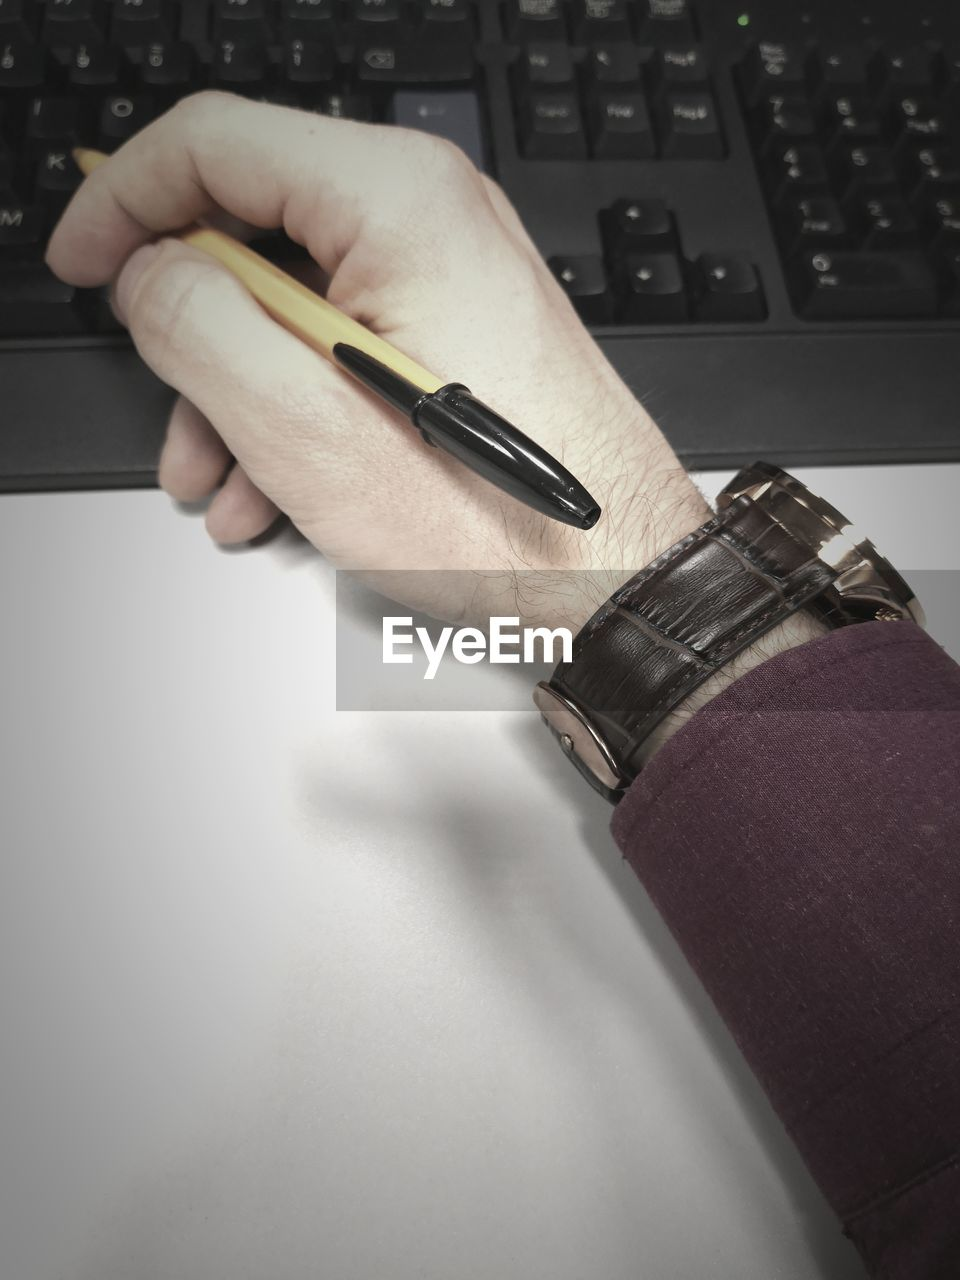 human hand, hand, one person, human body part, indoors, real people, pen, computer, body part, technology, holding, table, laptop, wireless technology, communication, high angle view, connection, close-up, writing instrument, finger, human limb, keyboard